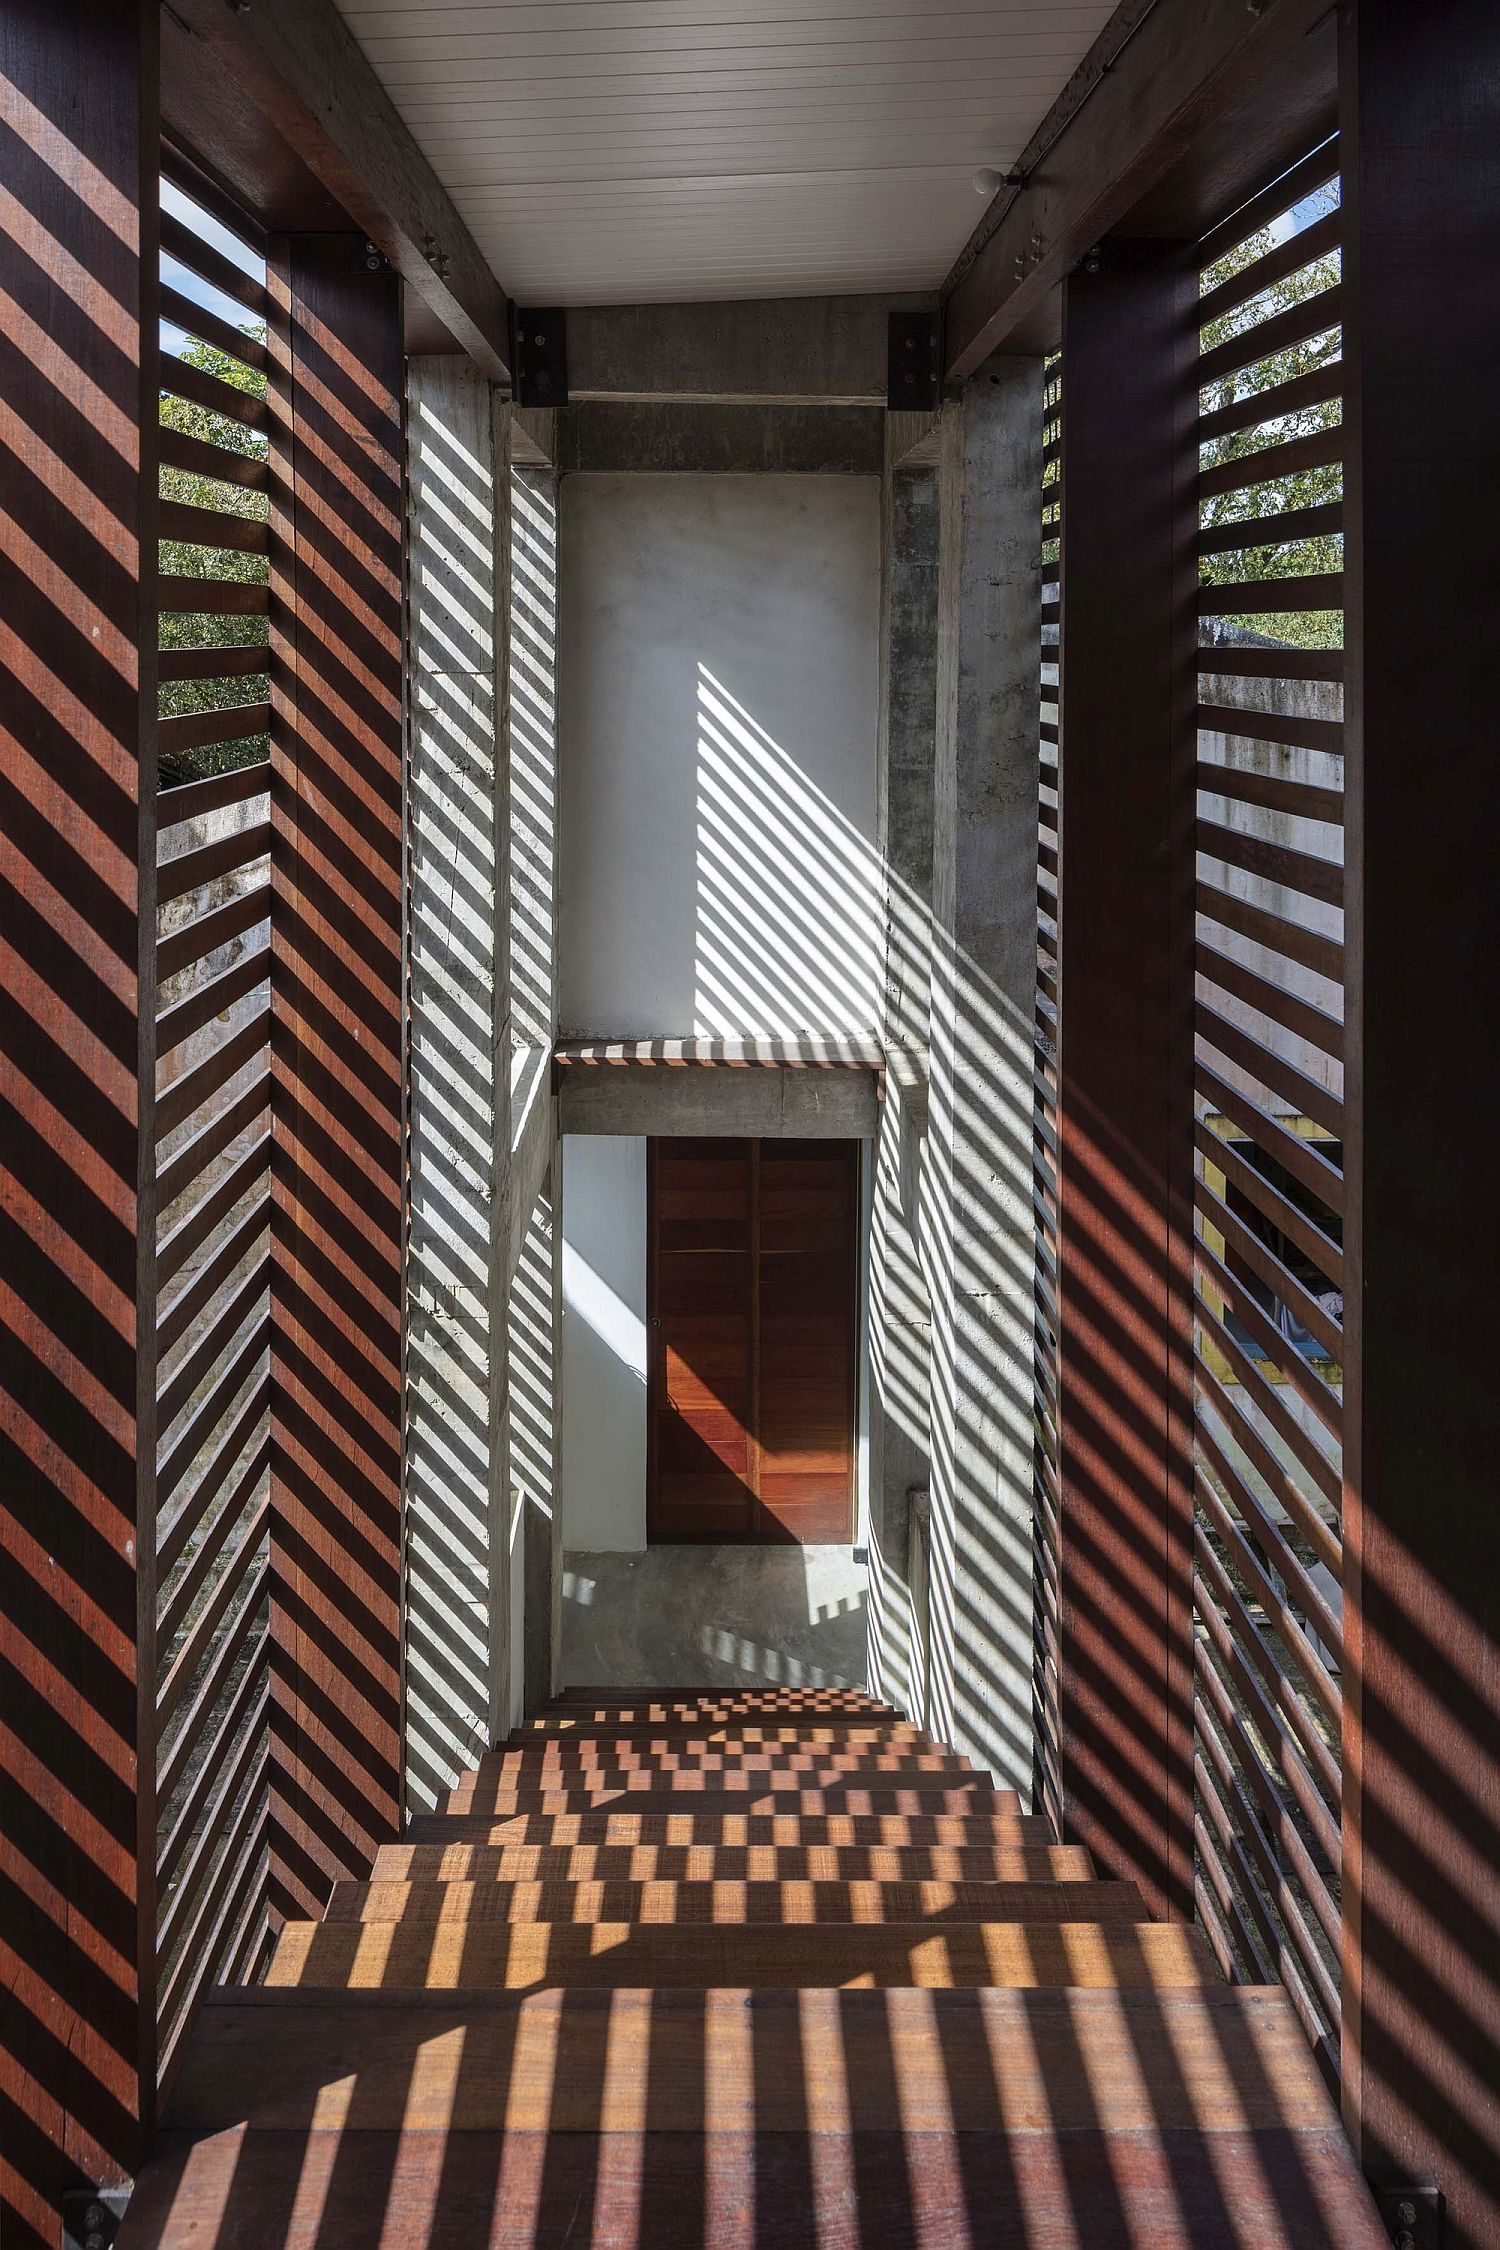 Wooden slats filter sunlight into the house